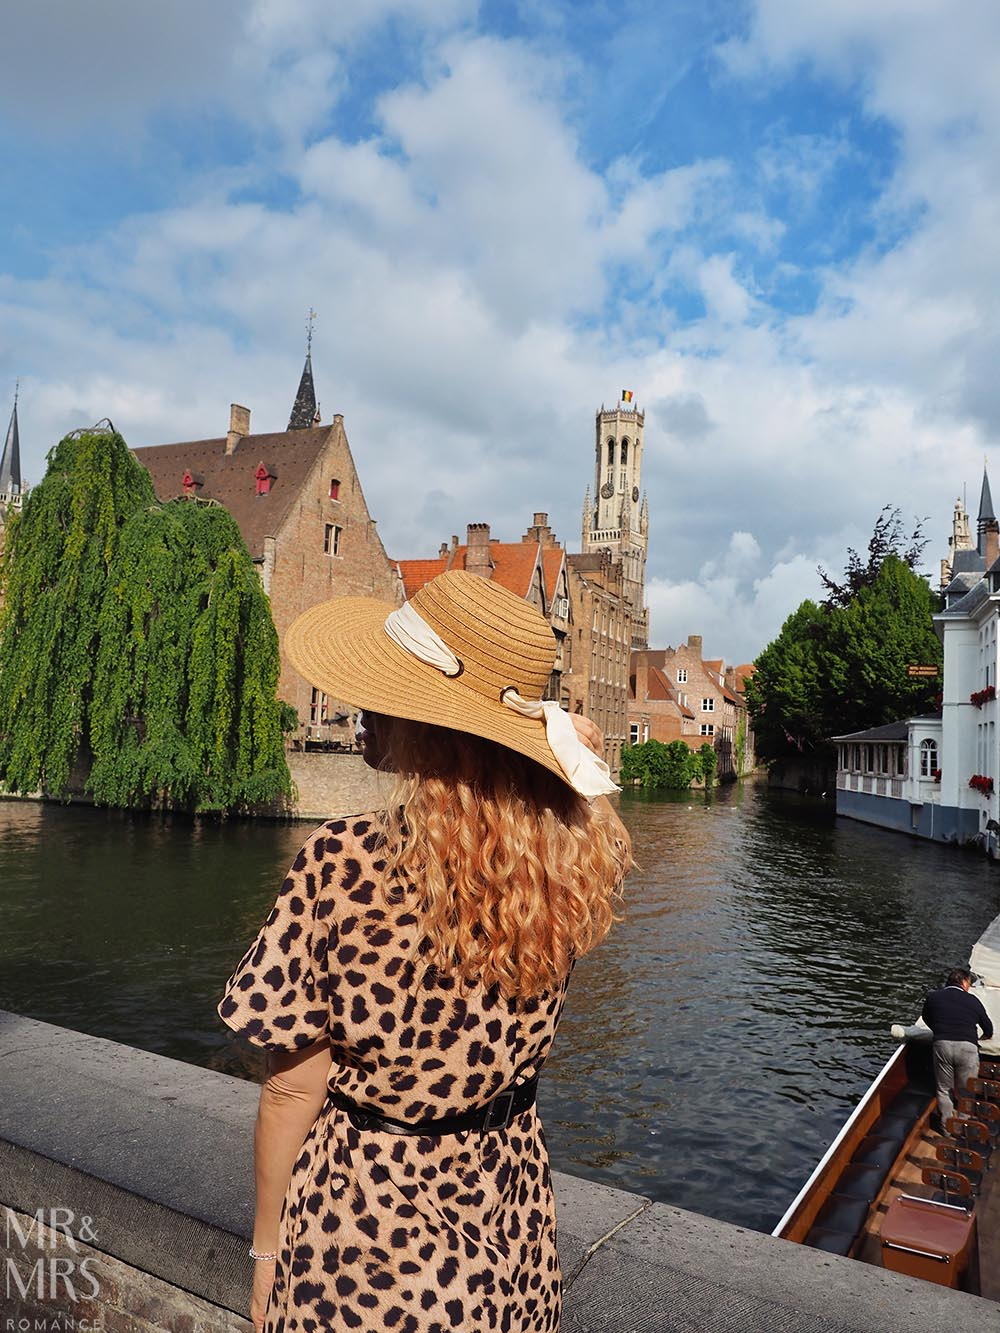 Bruges, Belgium - Christina and canal